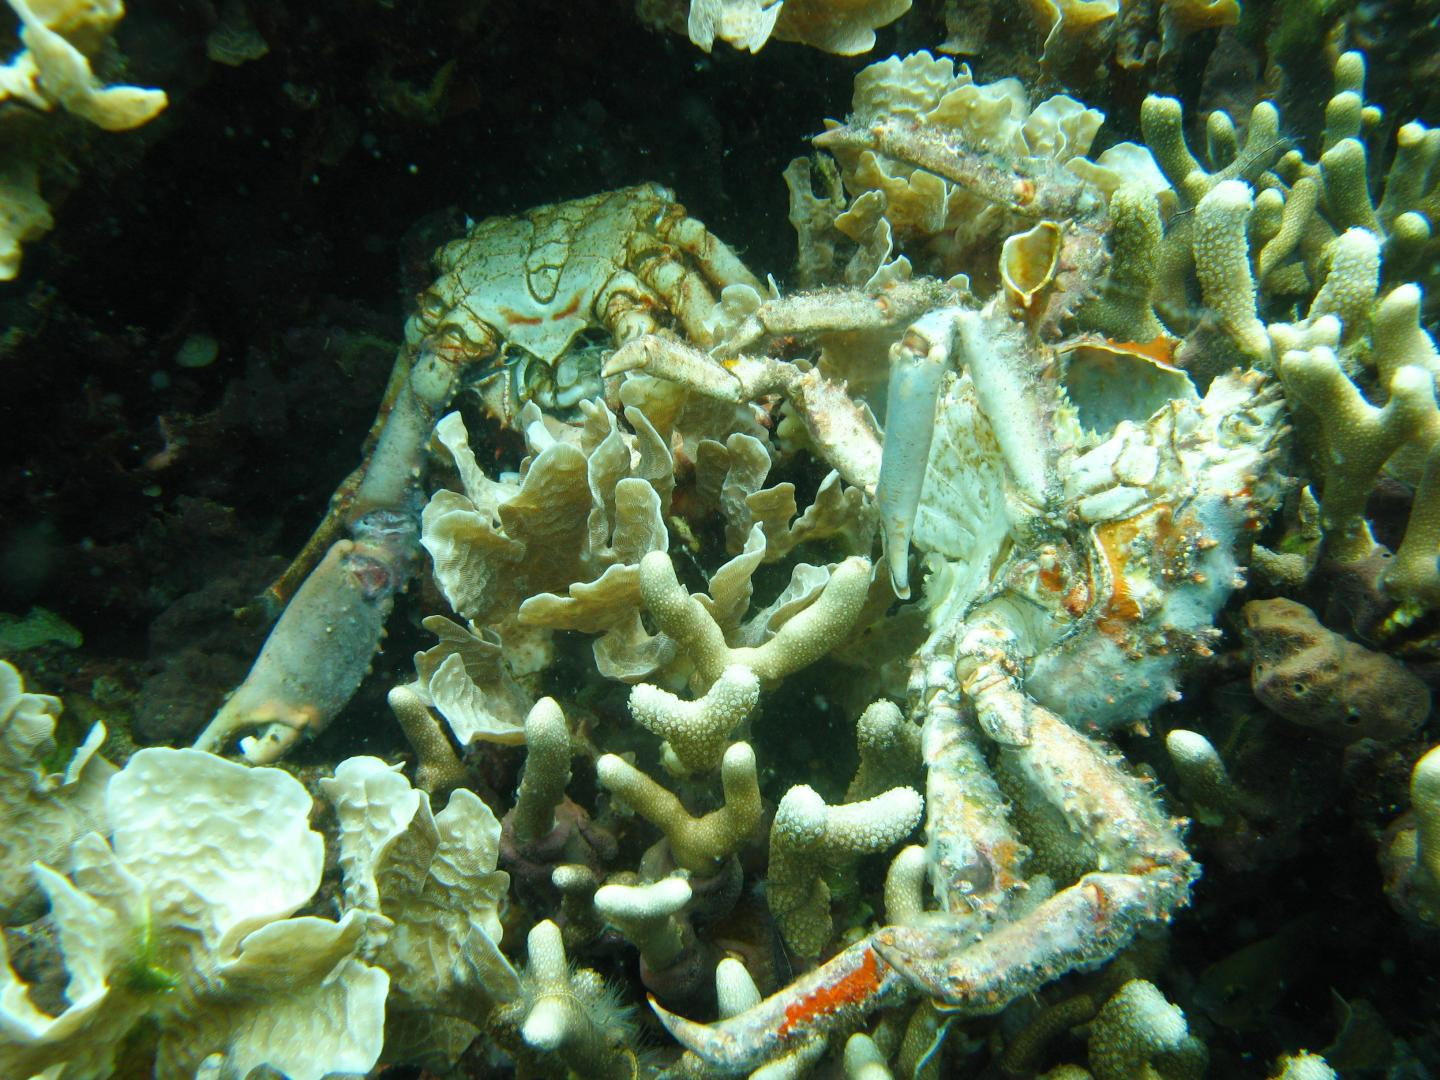 Dying crabs and coral